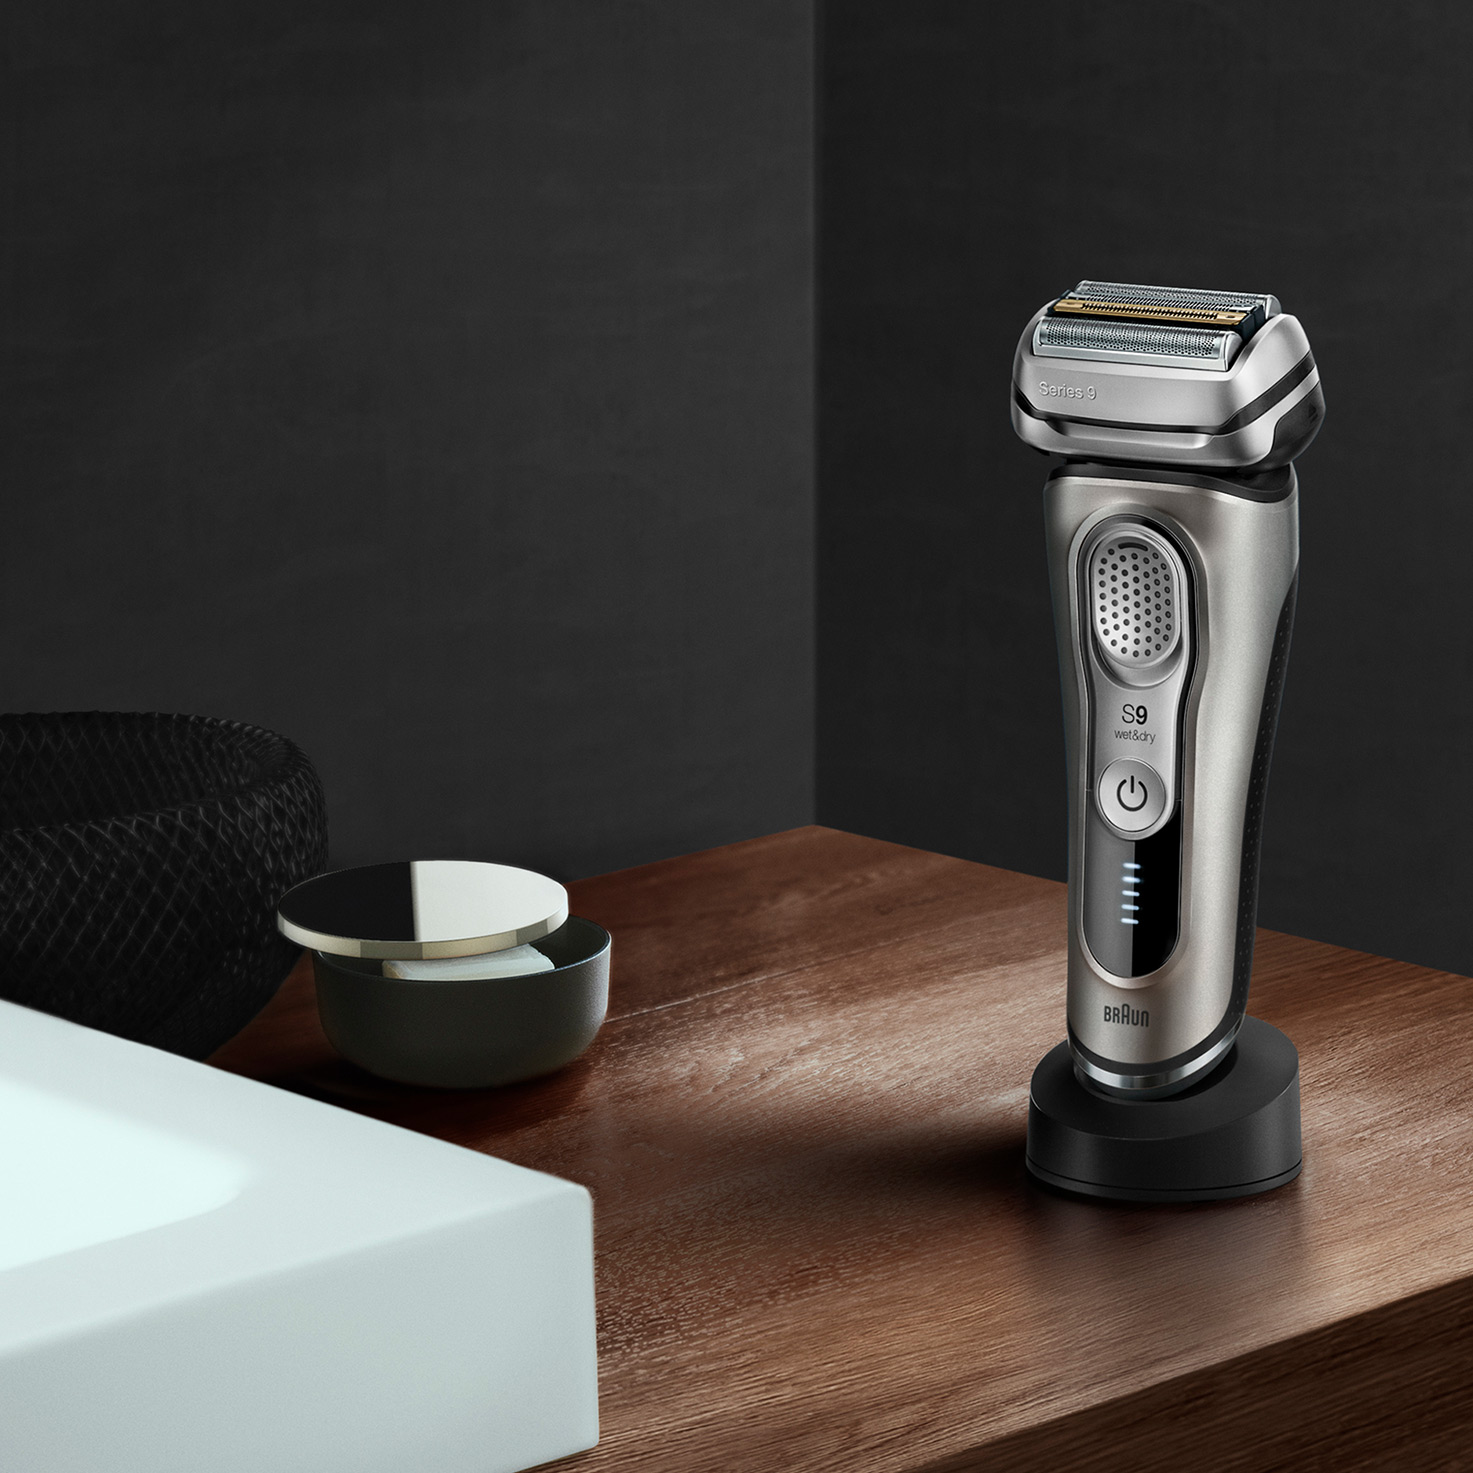 Series 9 9345s shaver in charging stand